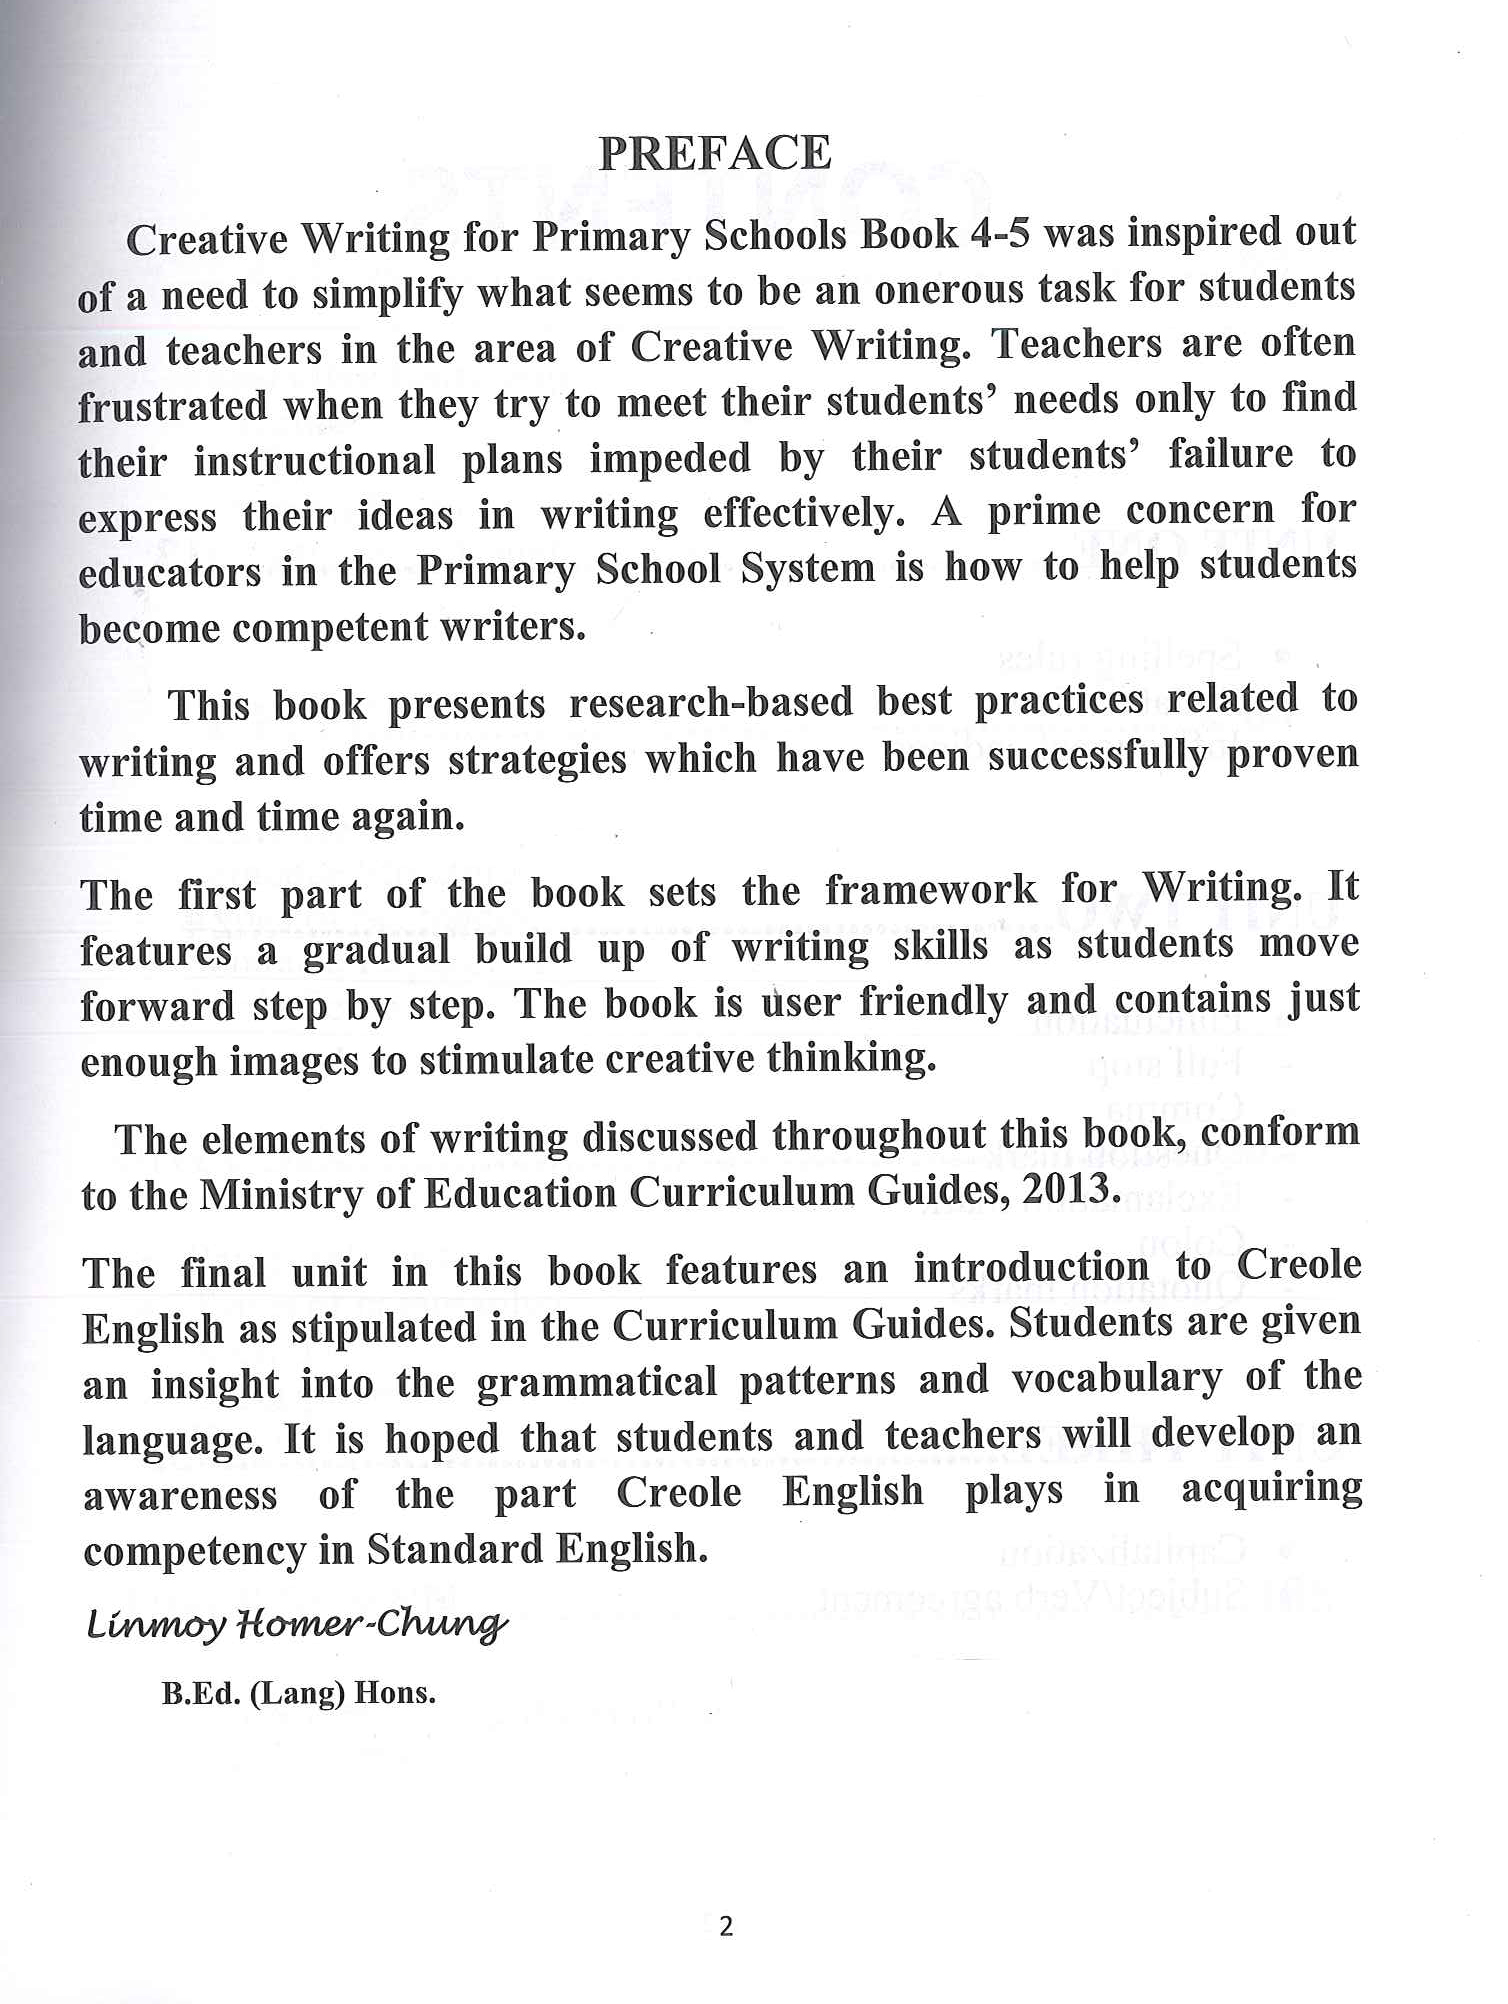 creative writing primary 2 Everyone seems to be flying around, enjoying themselves but on the first day of 2014, i'm gonna work on my school essay united electric controls essay the flow of life essays on eastern indonesia terrain custom research papers for sale san diego business doctoral dissertation i was rereading ts eliot's poetry (read: putting off writing an.